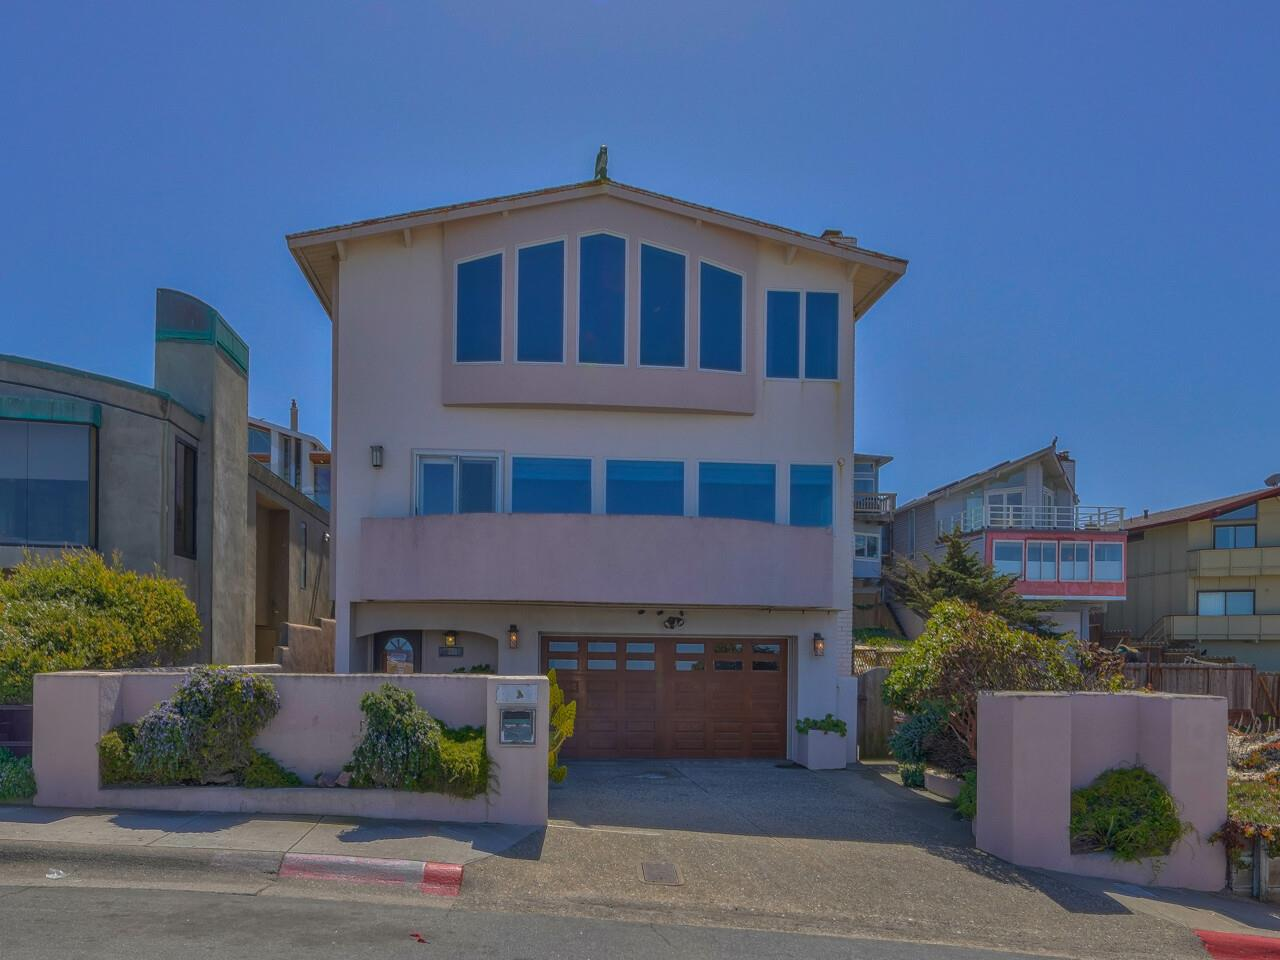 Photo of 138 Tide AVE, MONTEREY, CA 93940